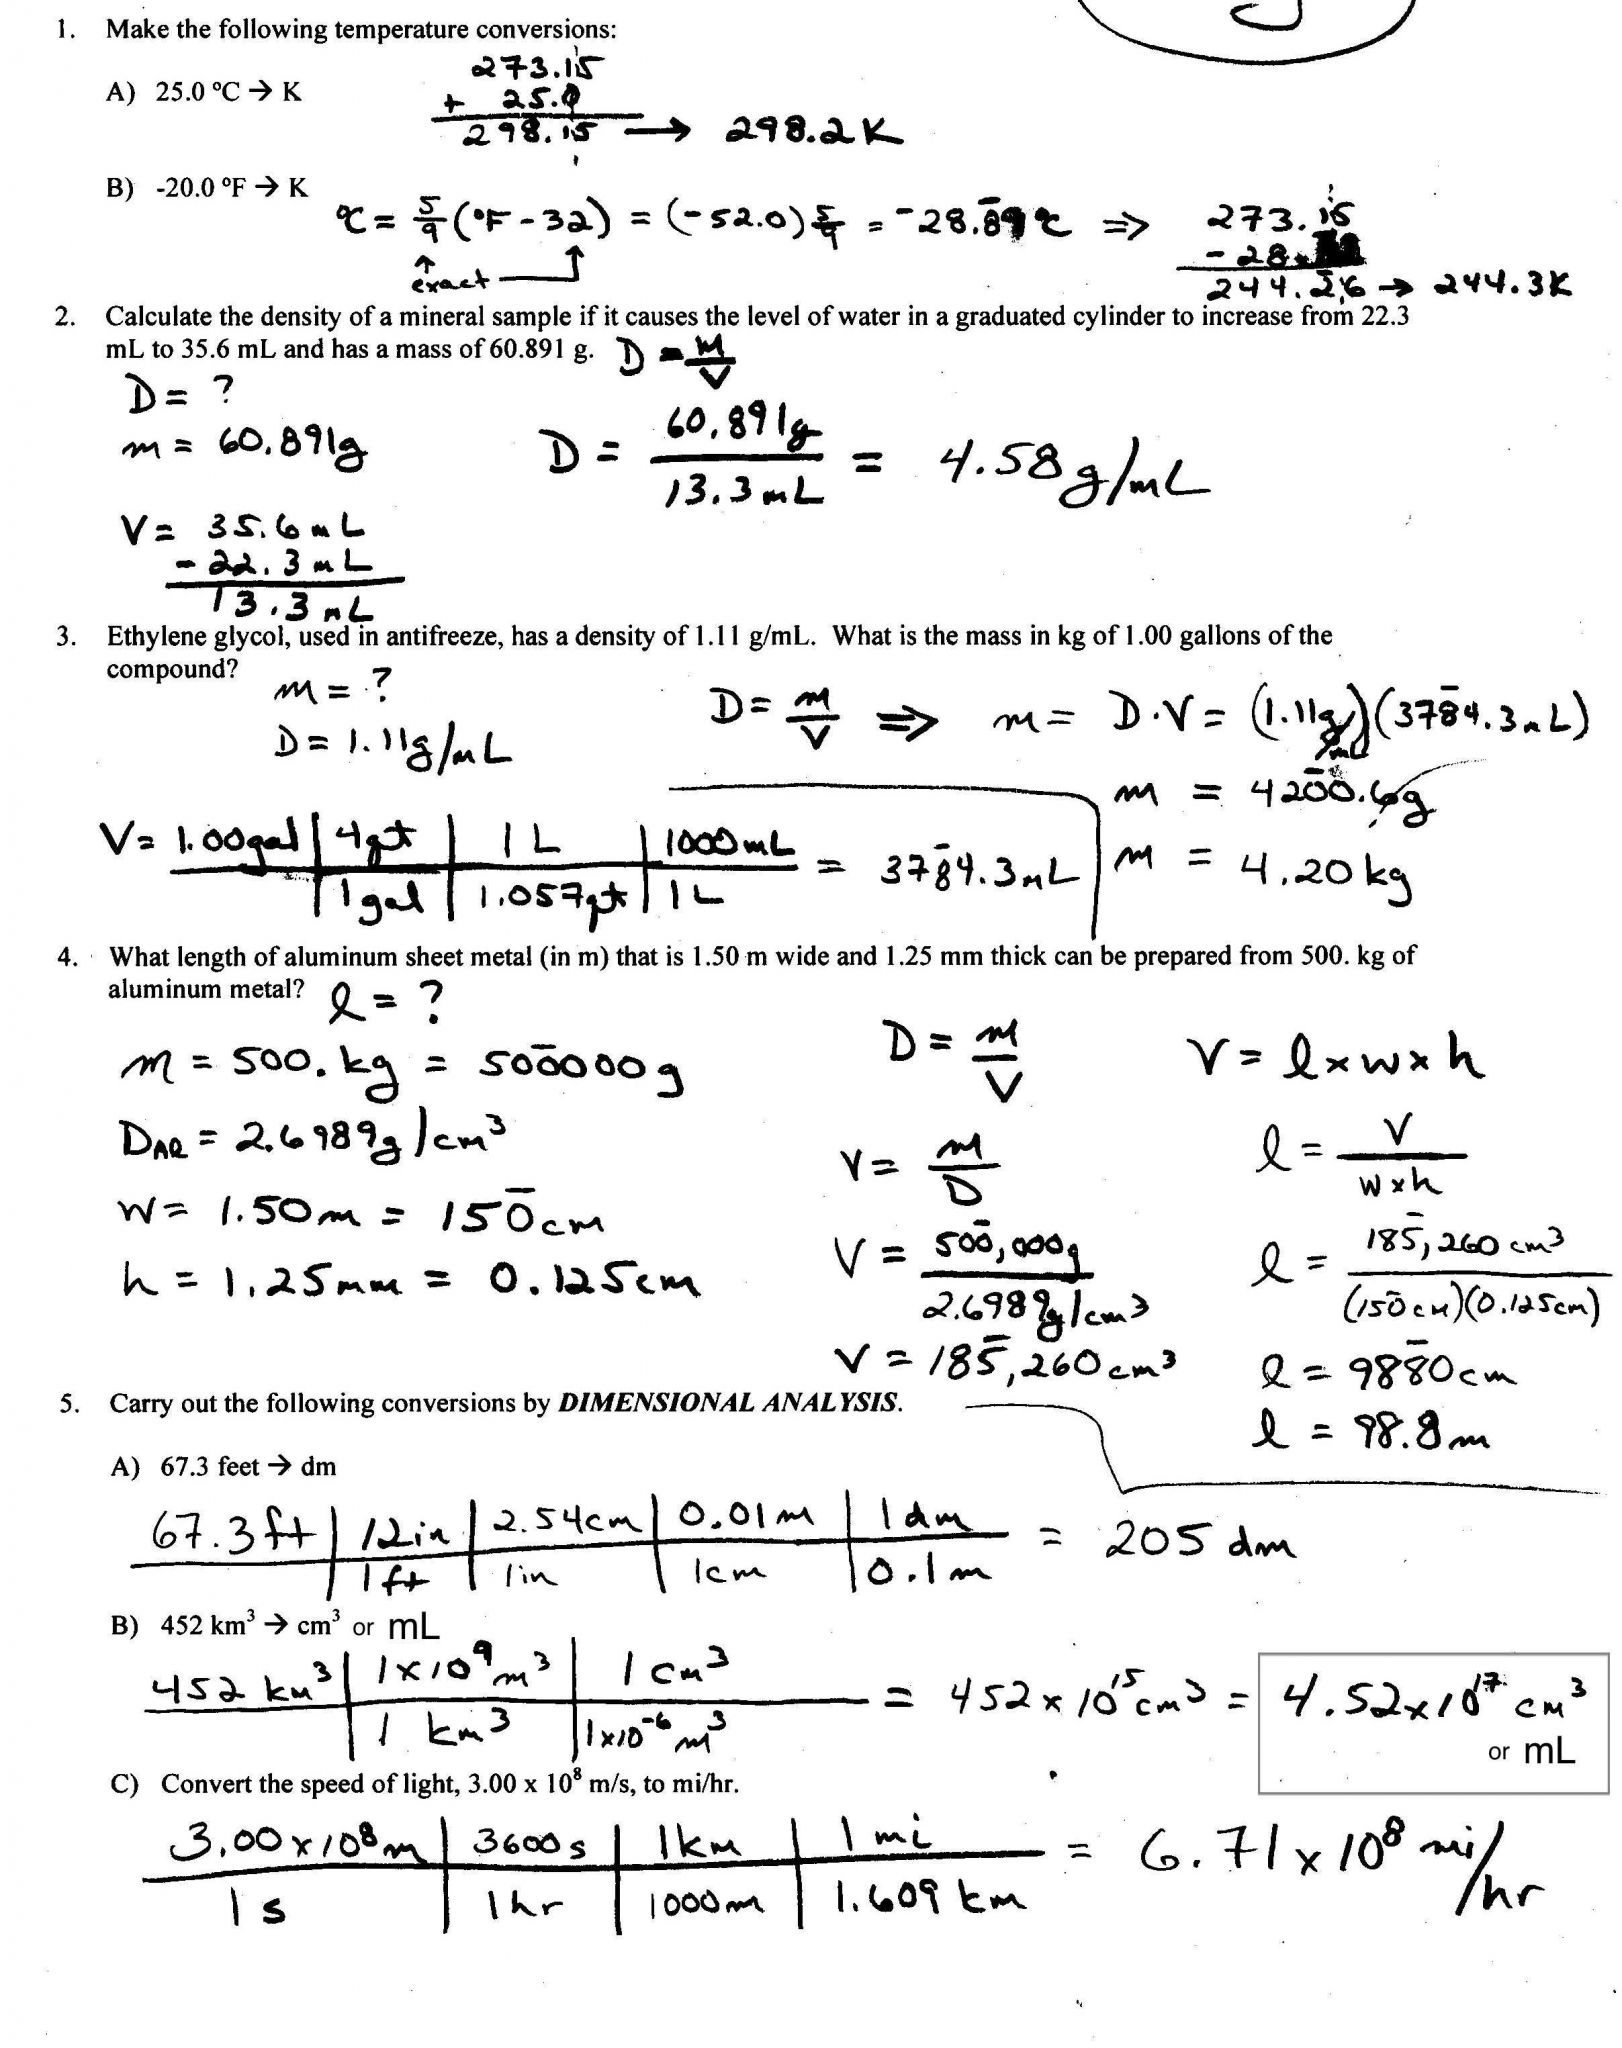 Momentum Problems Worksheet Answers Along with Unit 5 Worksheet 2 Physics Answers Inspirational Momentum and